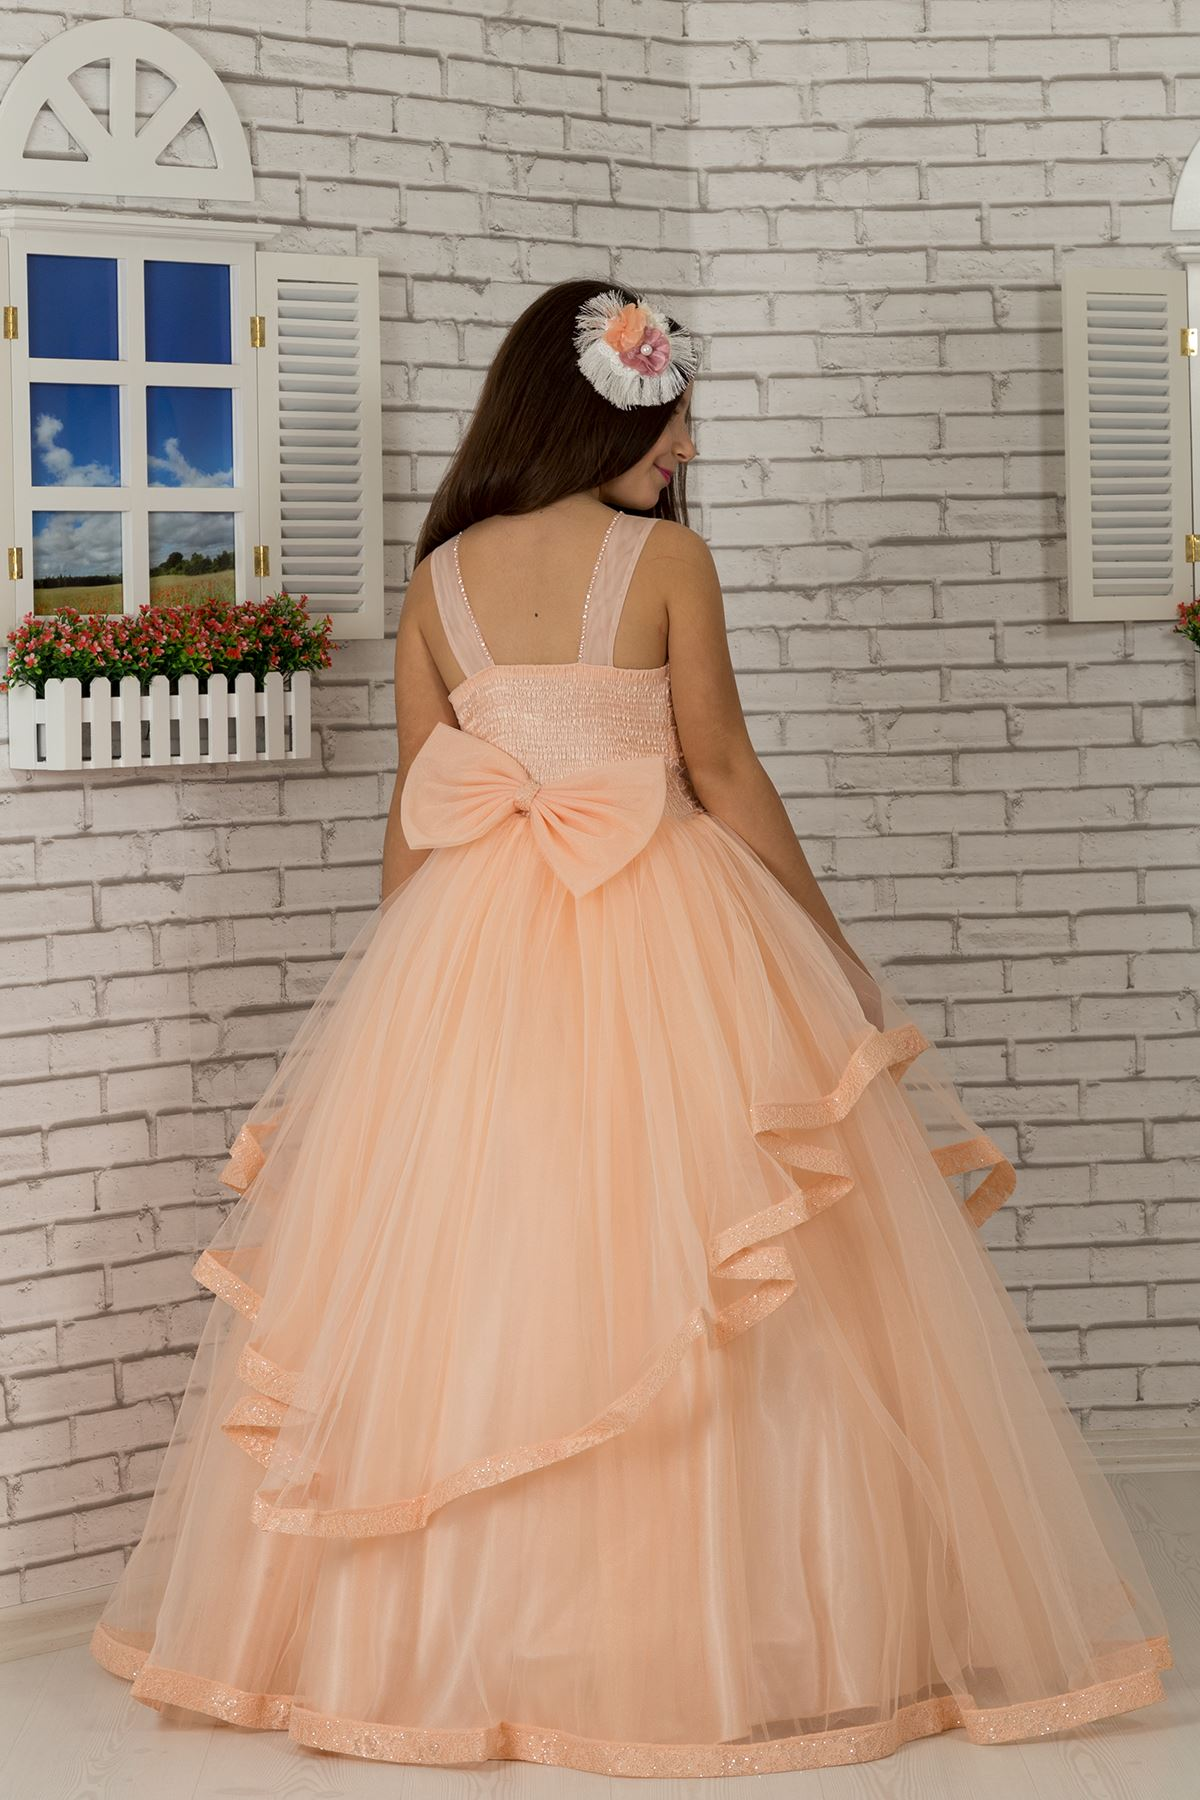 Body Detailed, Tulle Fluffy Girl's Evening Dress 602 Salmon